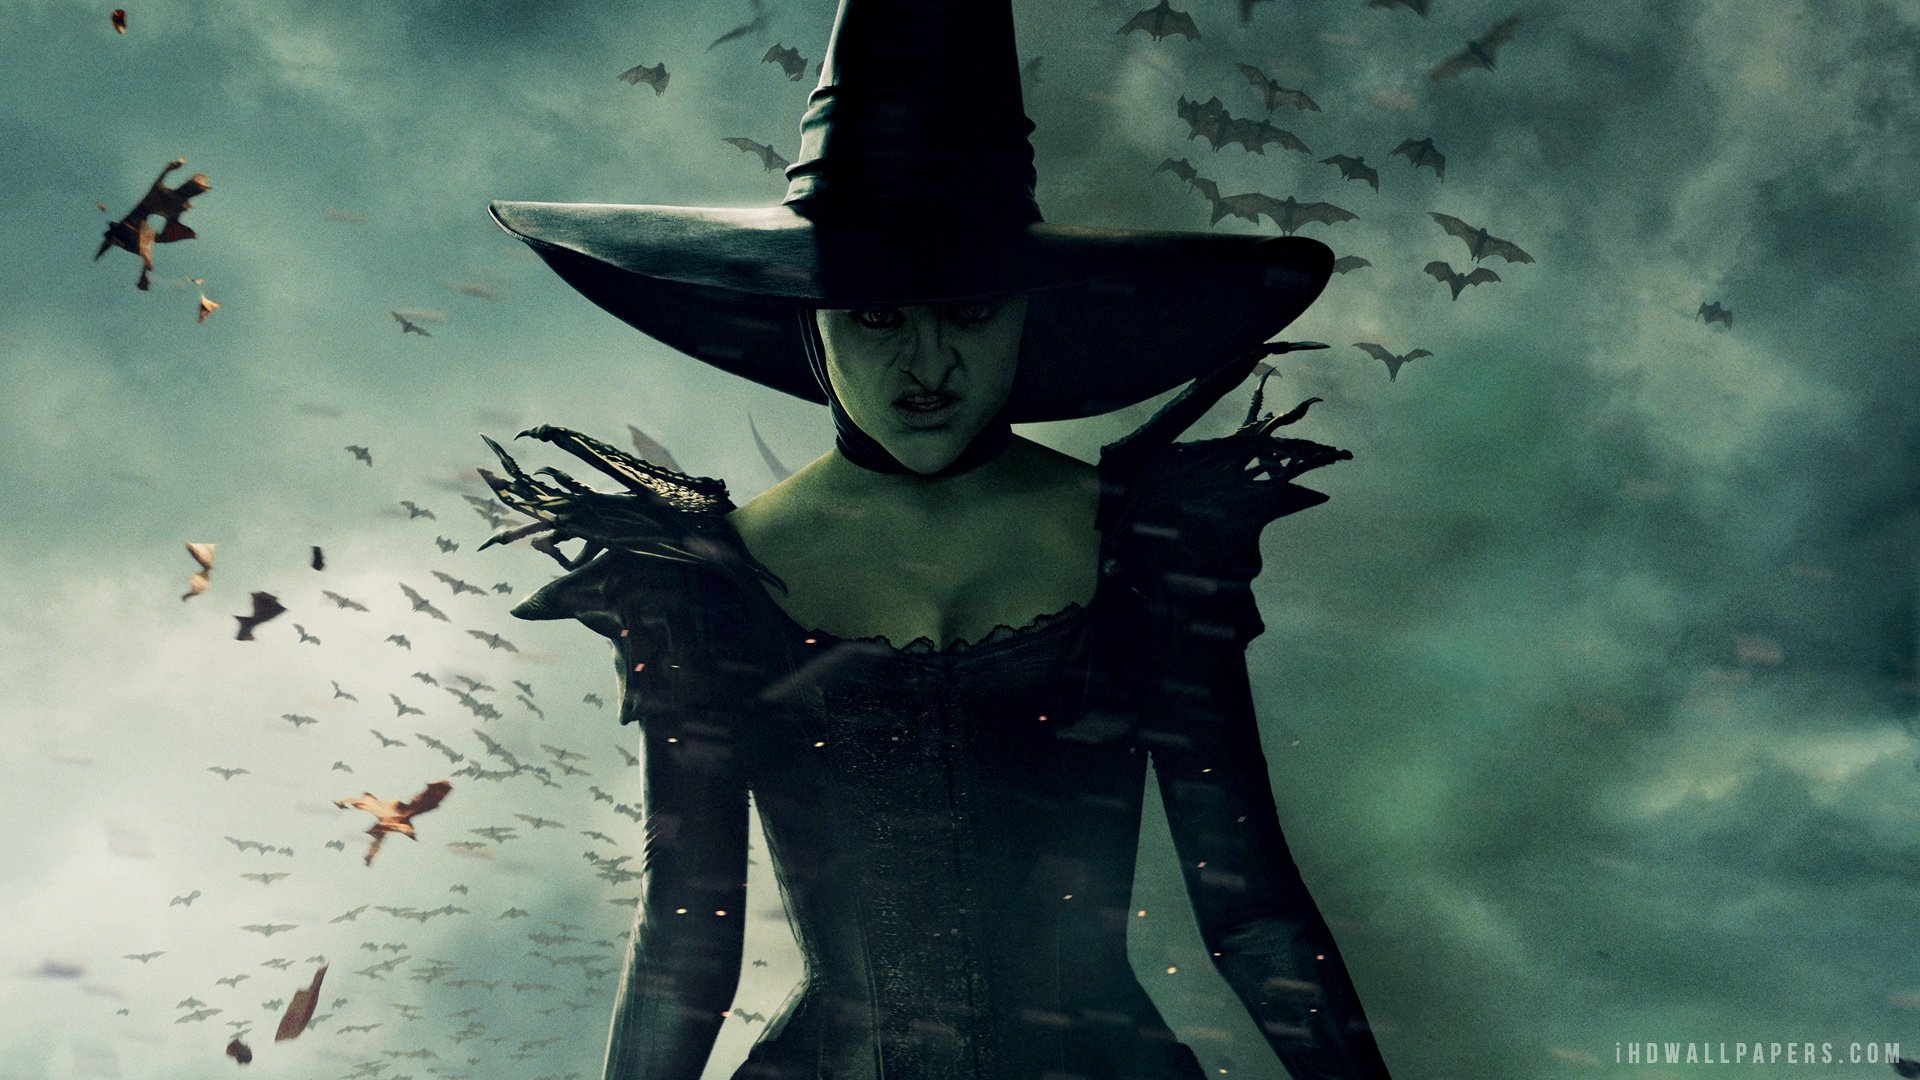 Wicked Witch Wallpaper Wallpapersafari HD Wallpapers Download Free Images Wallpaper [1000image.com]